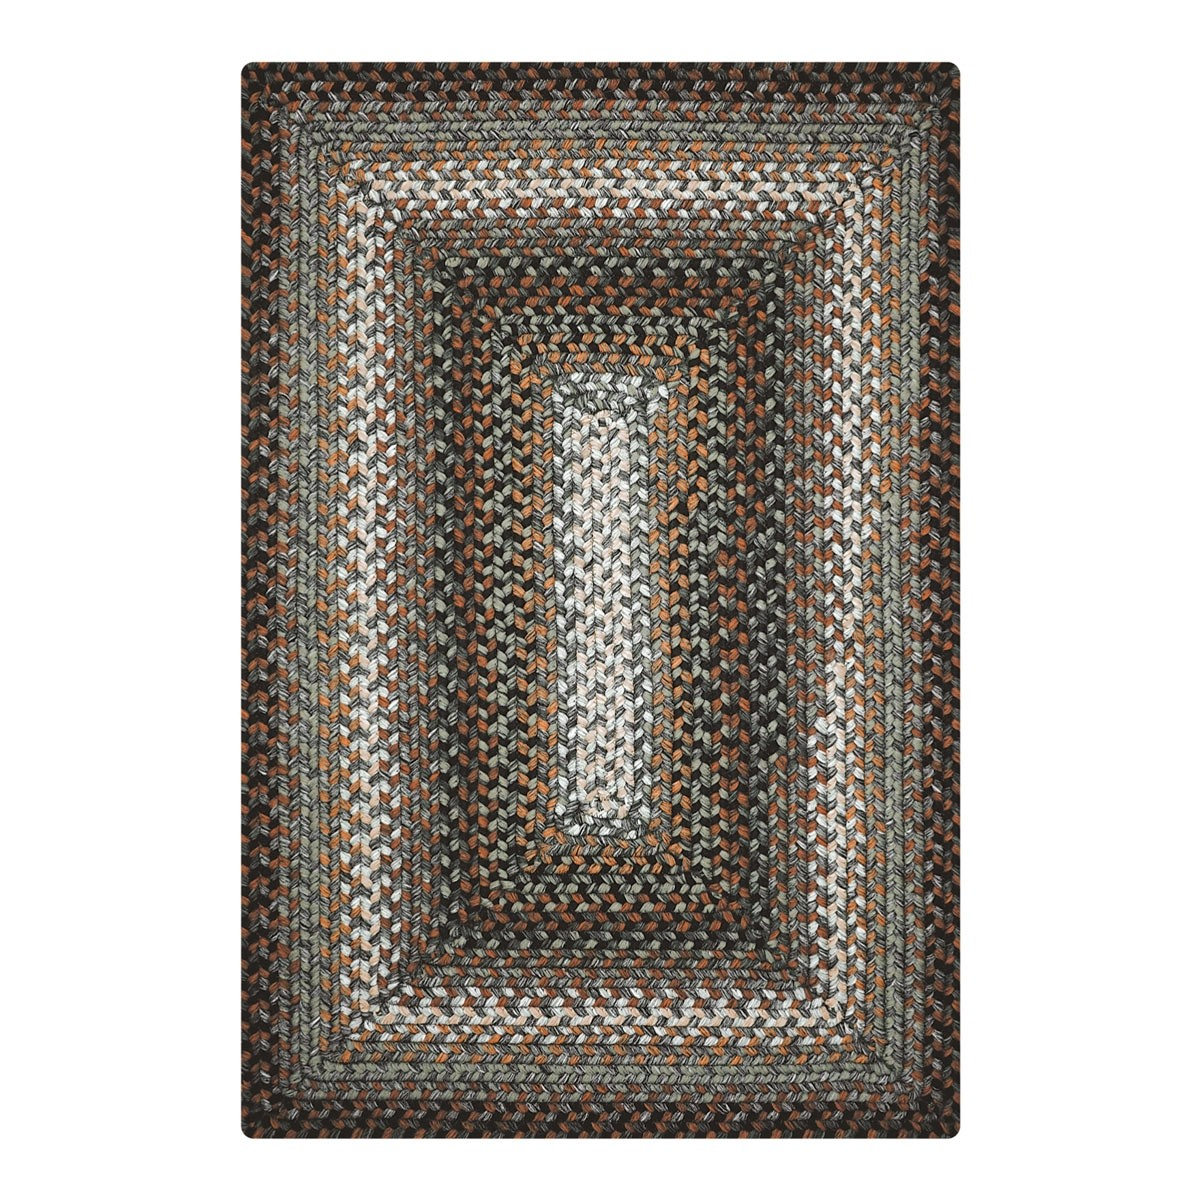 Buy midnight moon brown grey ultra durable braided rugs online homespice - Tips to consider when buying an outdoor rug ...